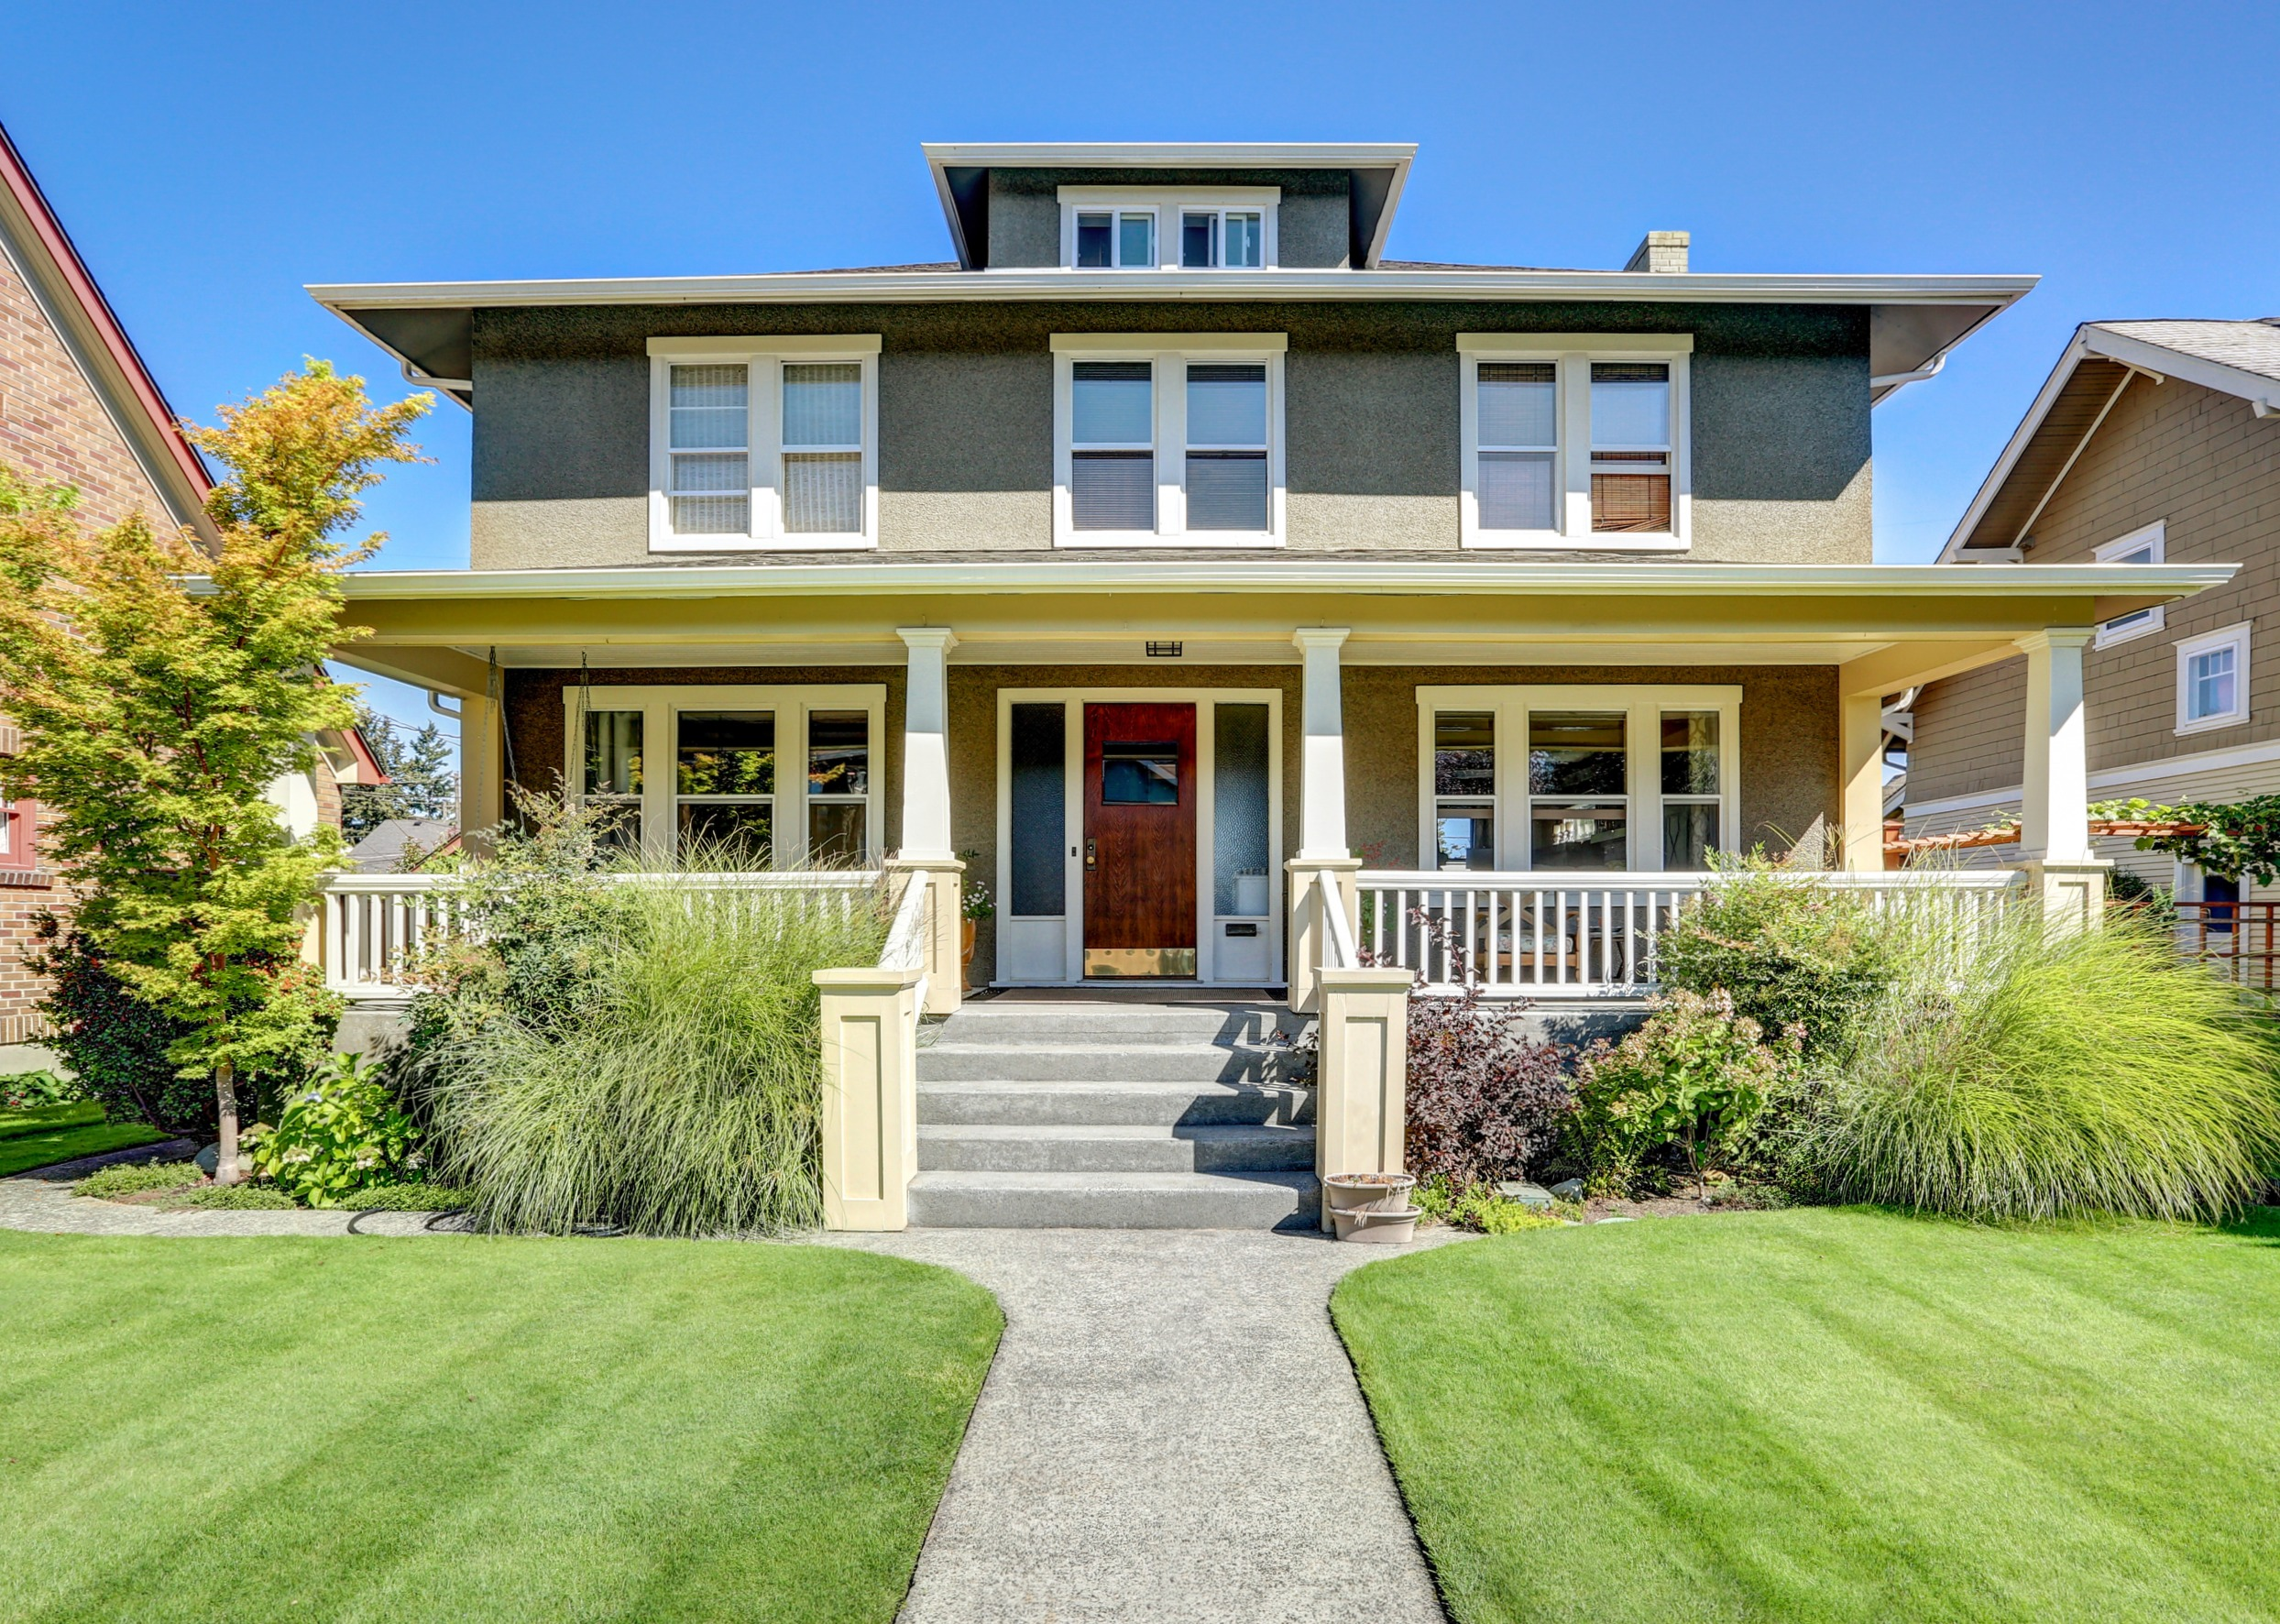 A dark green craftsman style home with wood front door, large front porch, bright green yard, and large shrubs